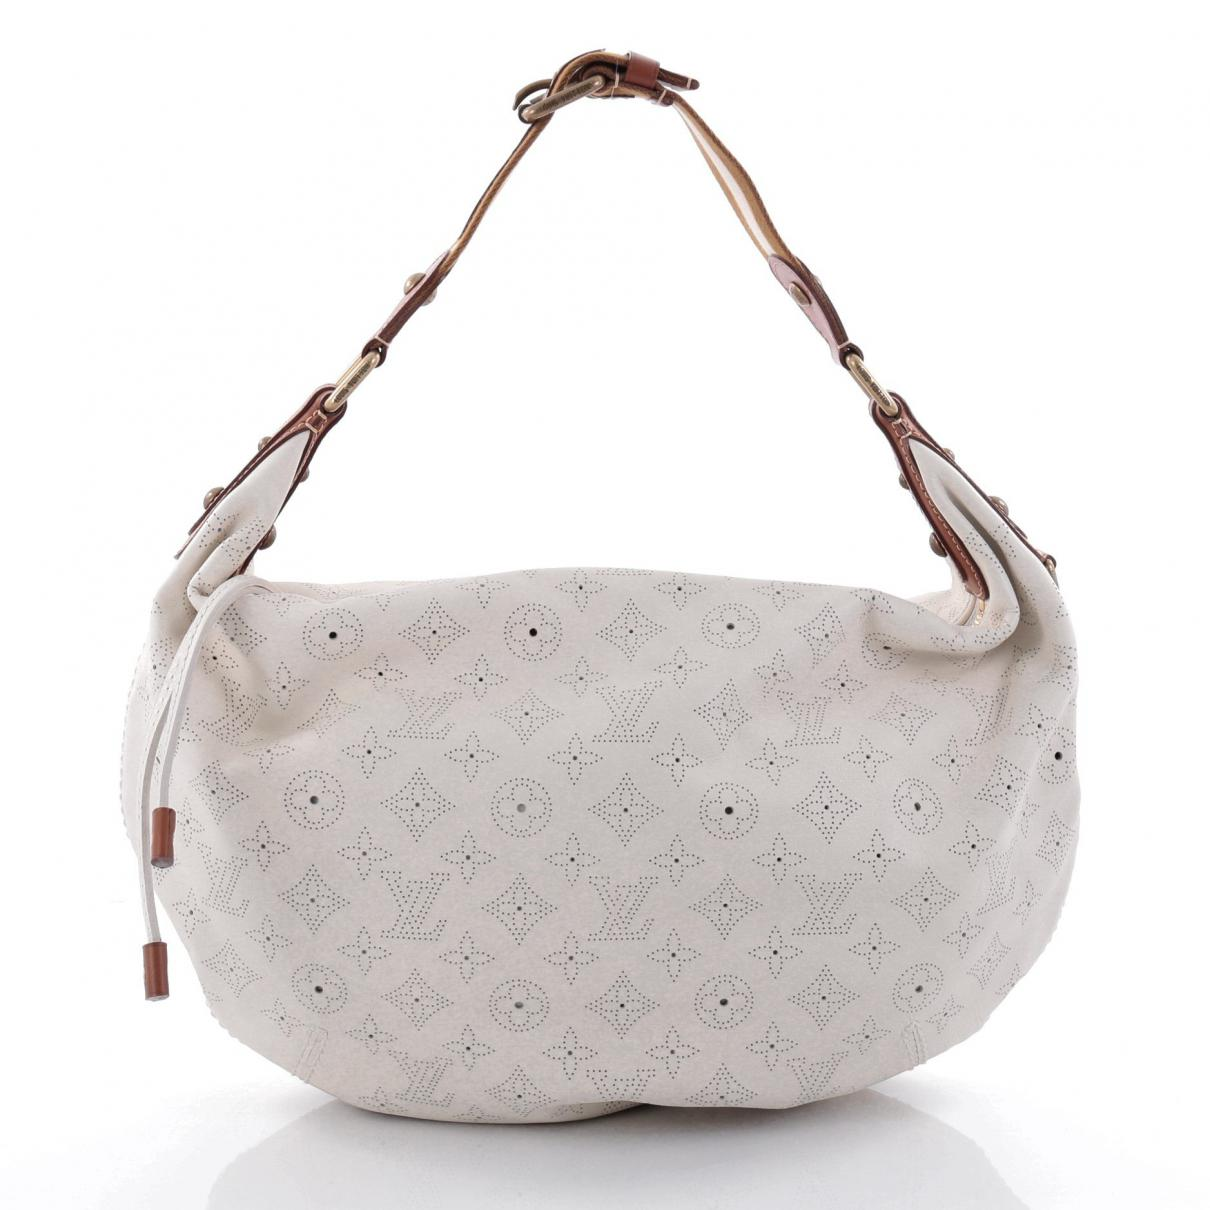 Louis Vuitton Pre-owned - White Leather Handbag